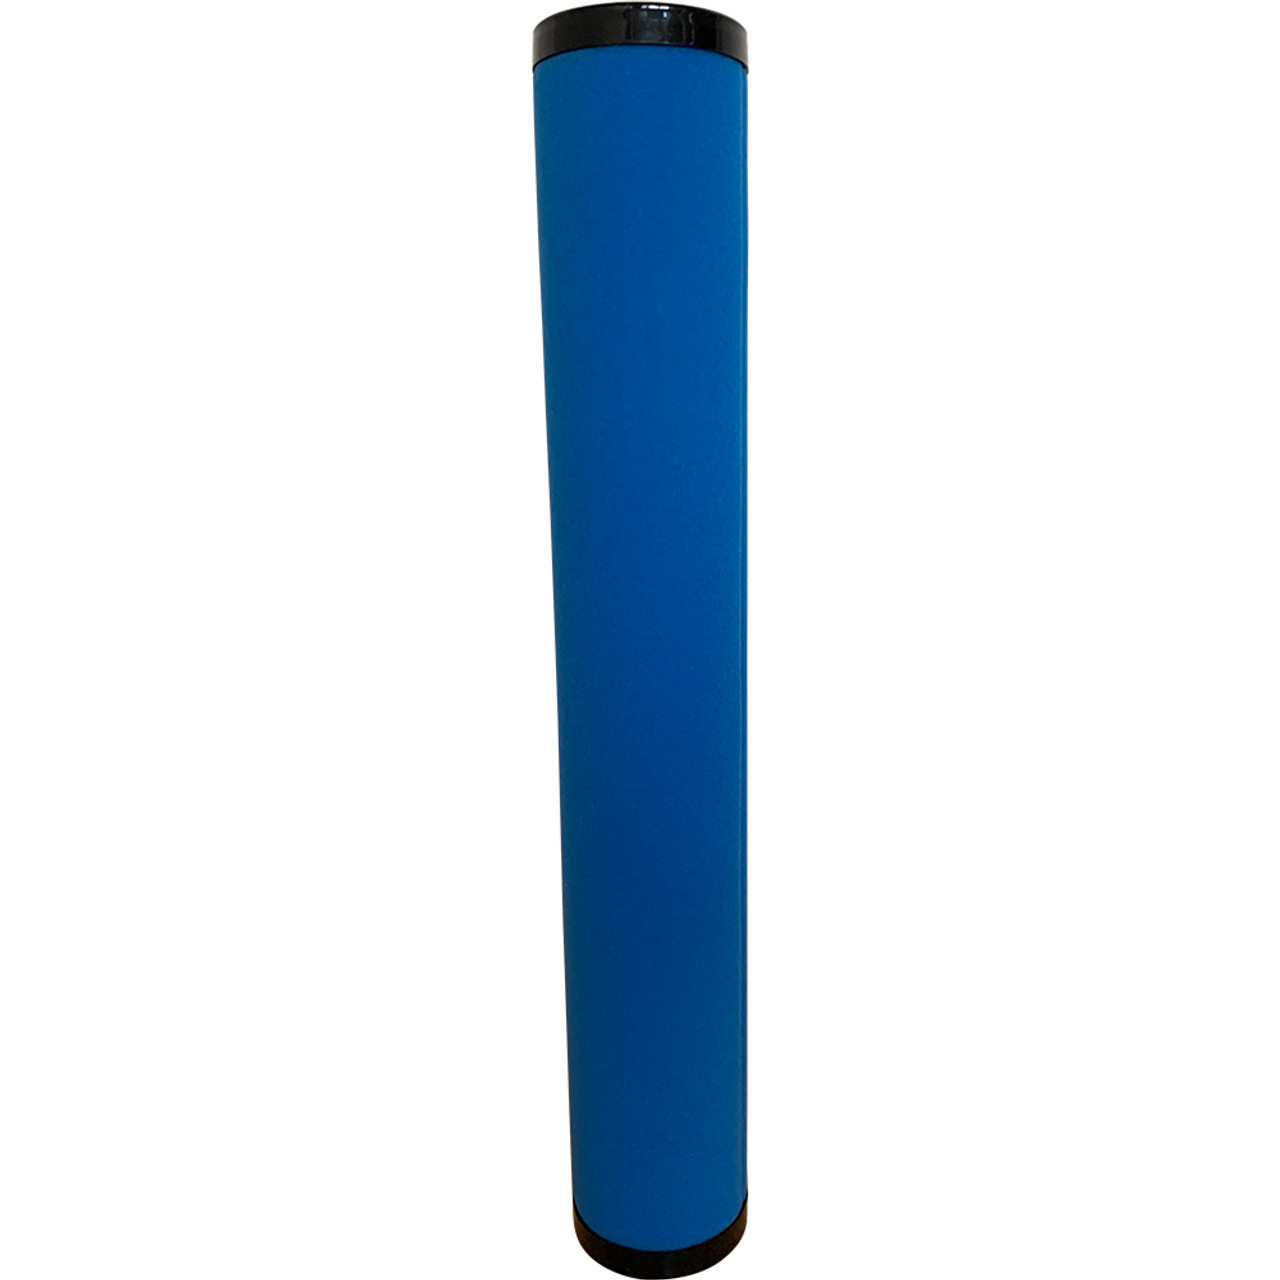 1 Micron Particulate//0.1 PPM Oil Removal Efficiency E7-48 Replacement Filter Element for Hankison HF7-48-20-DG